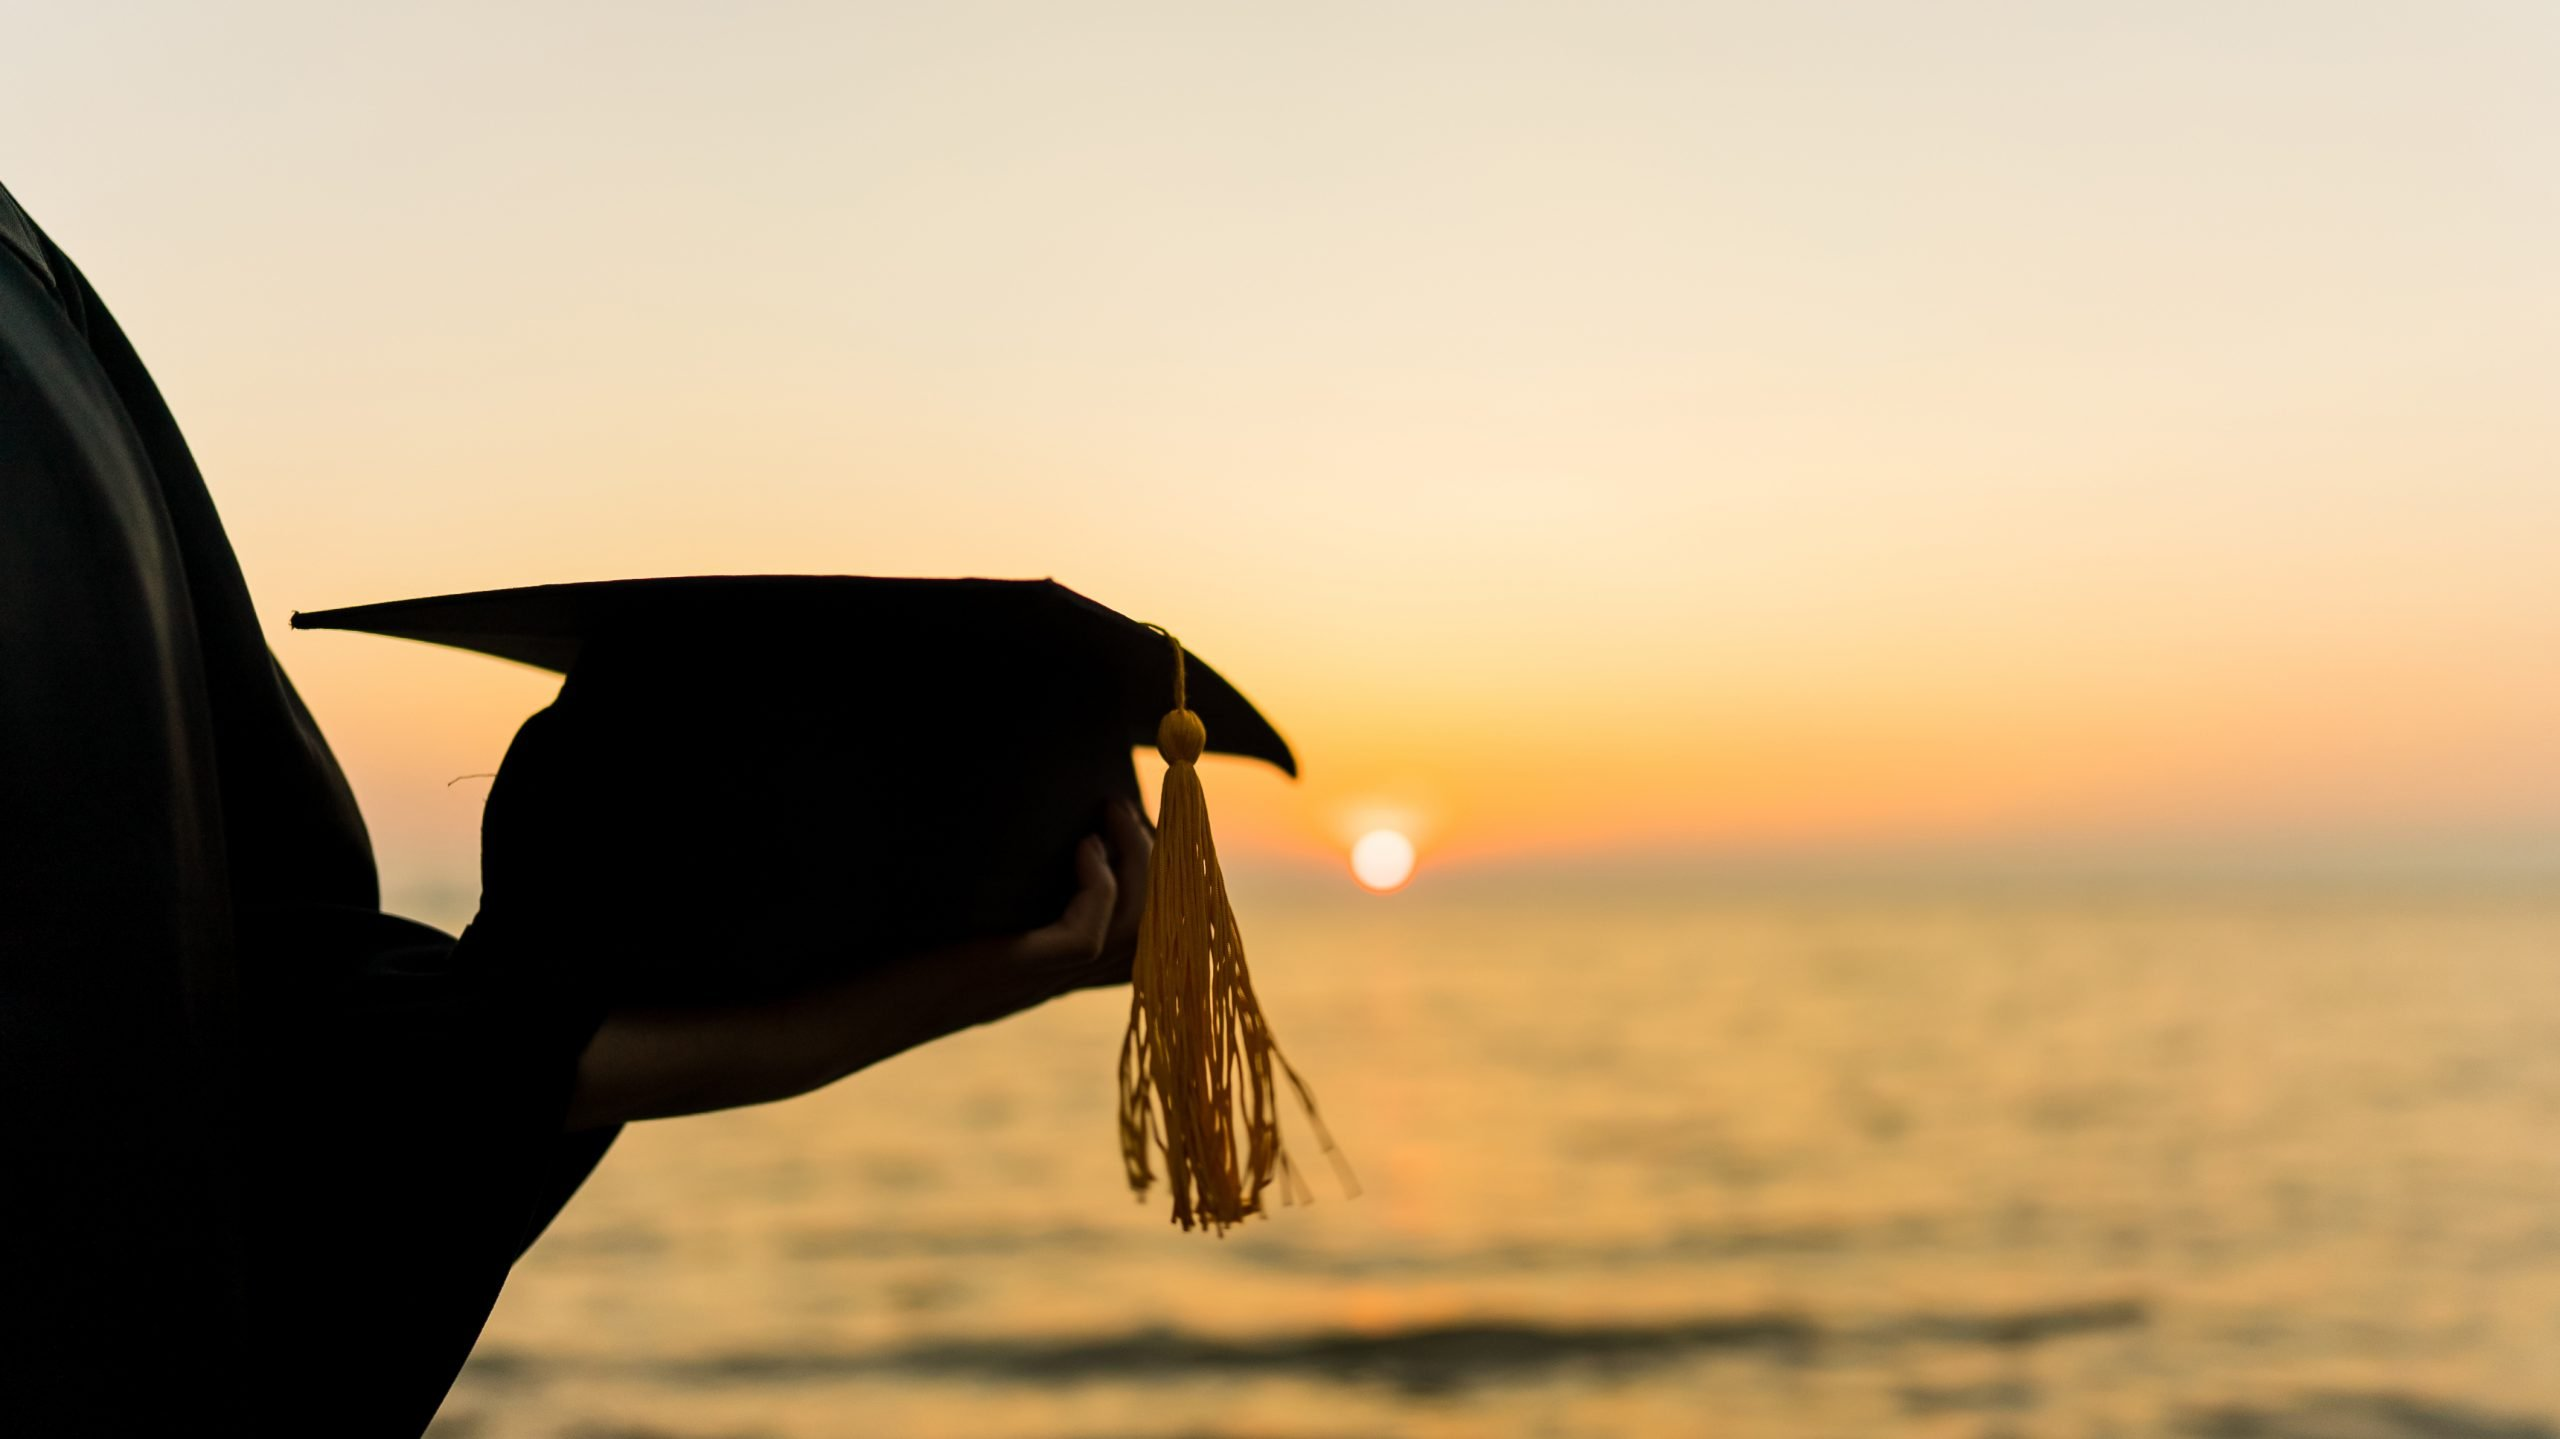 Higher Ed Must Transform to Stay Relevant